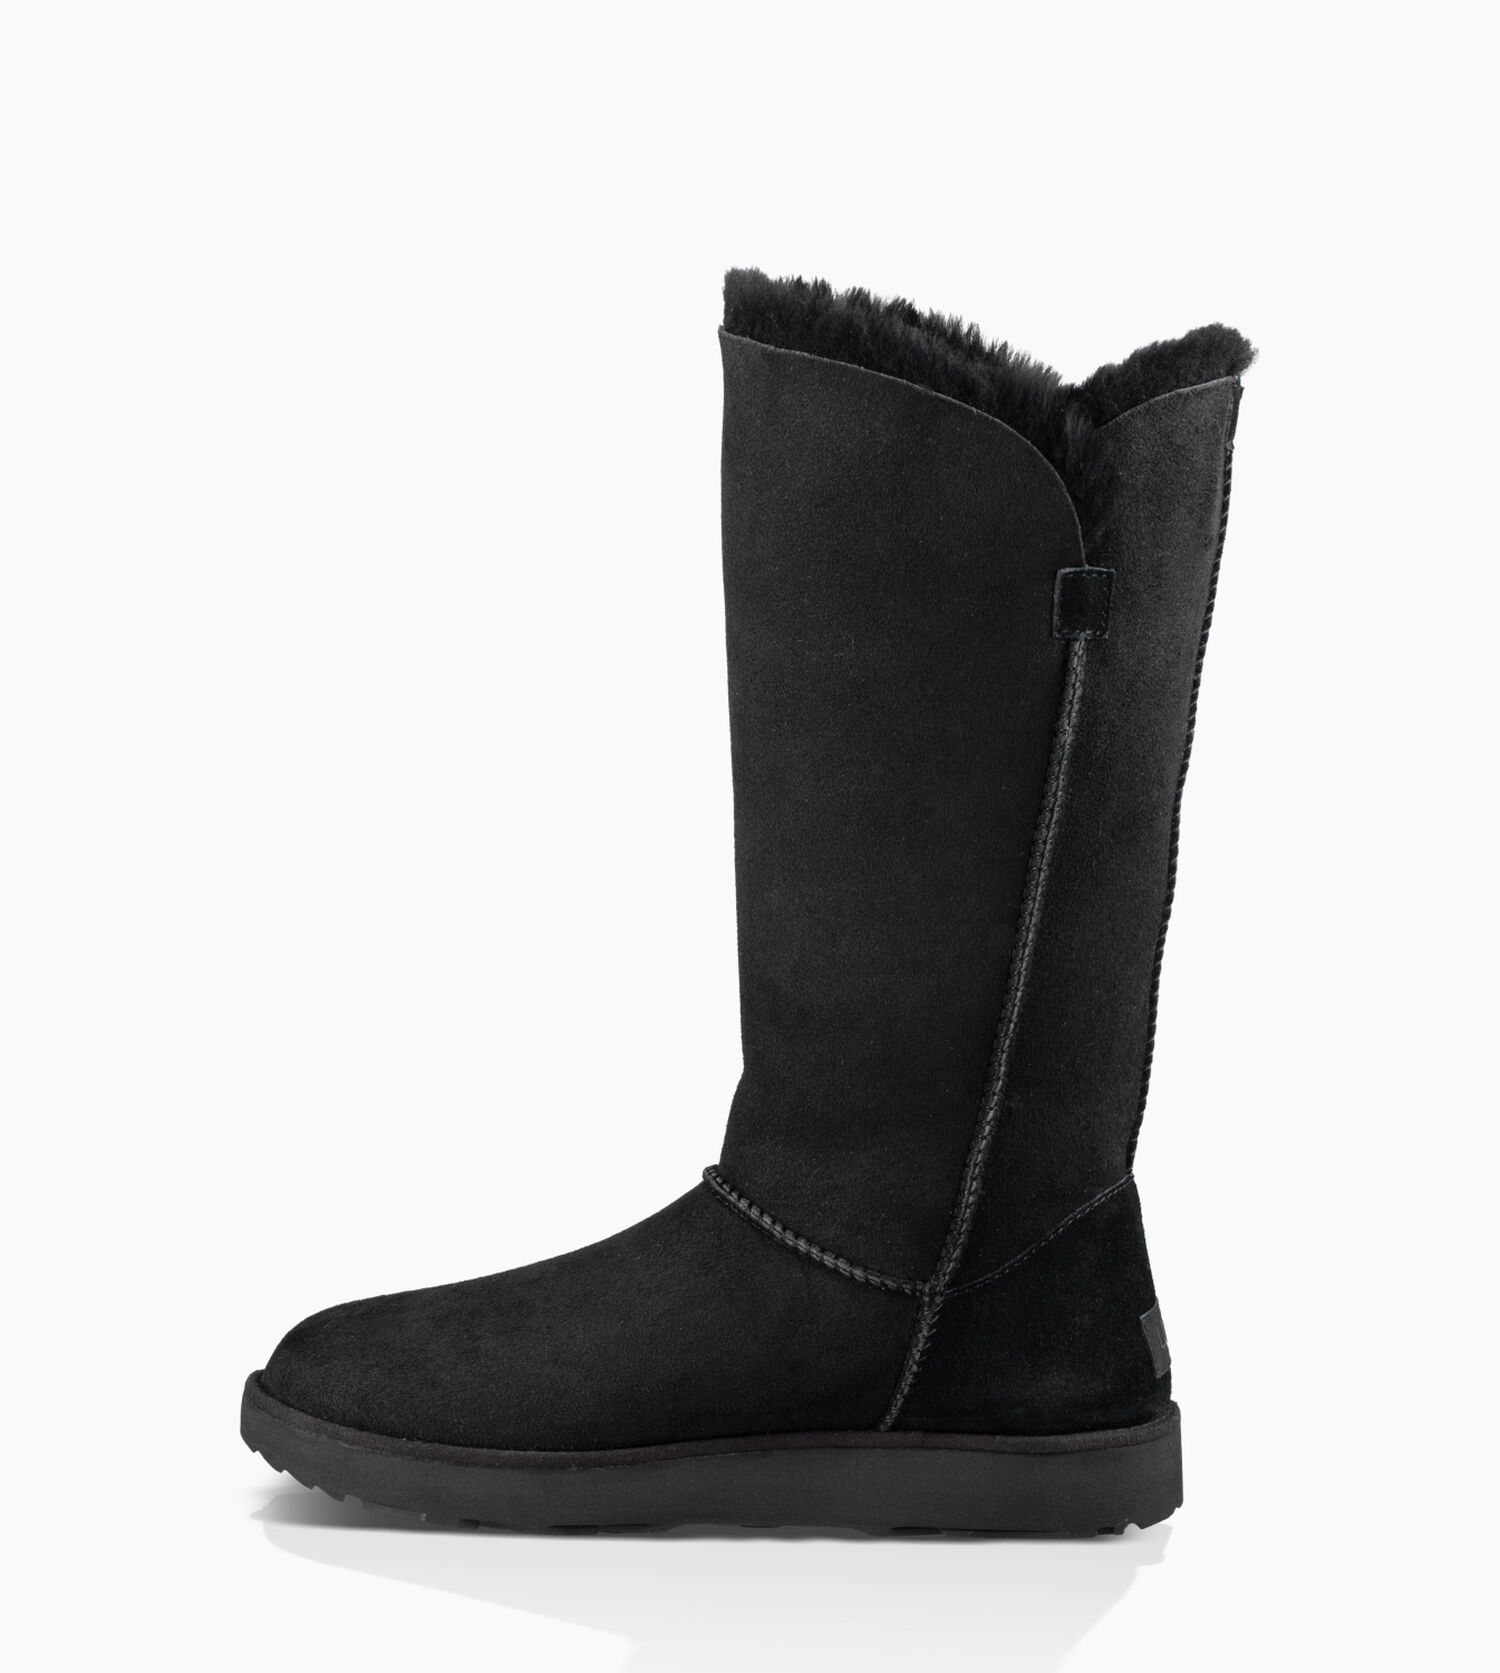 af3ac140e72 Women's Share this product Classic Cuff Tall Boot